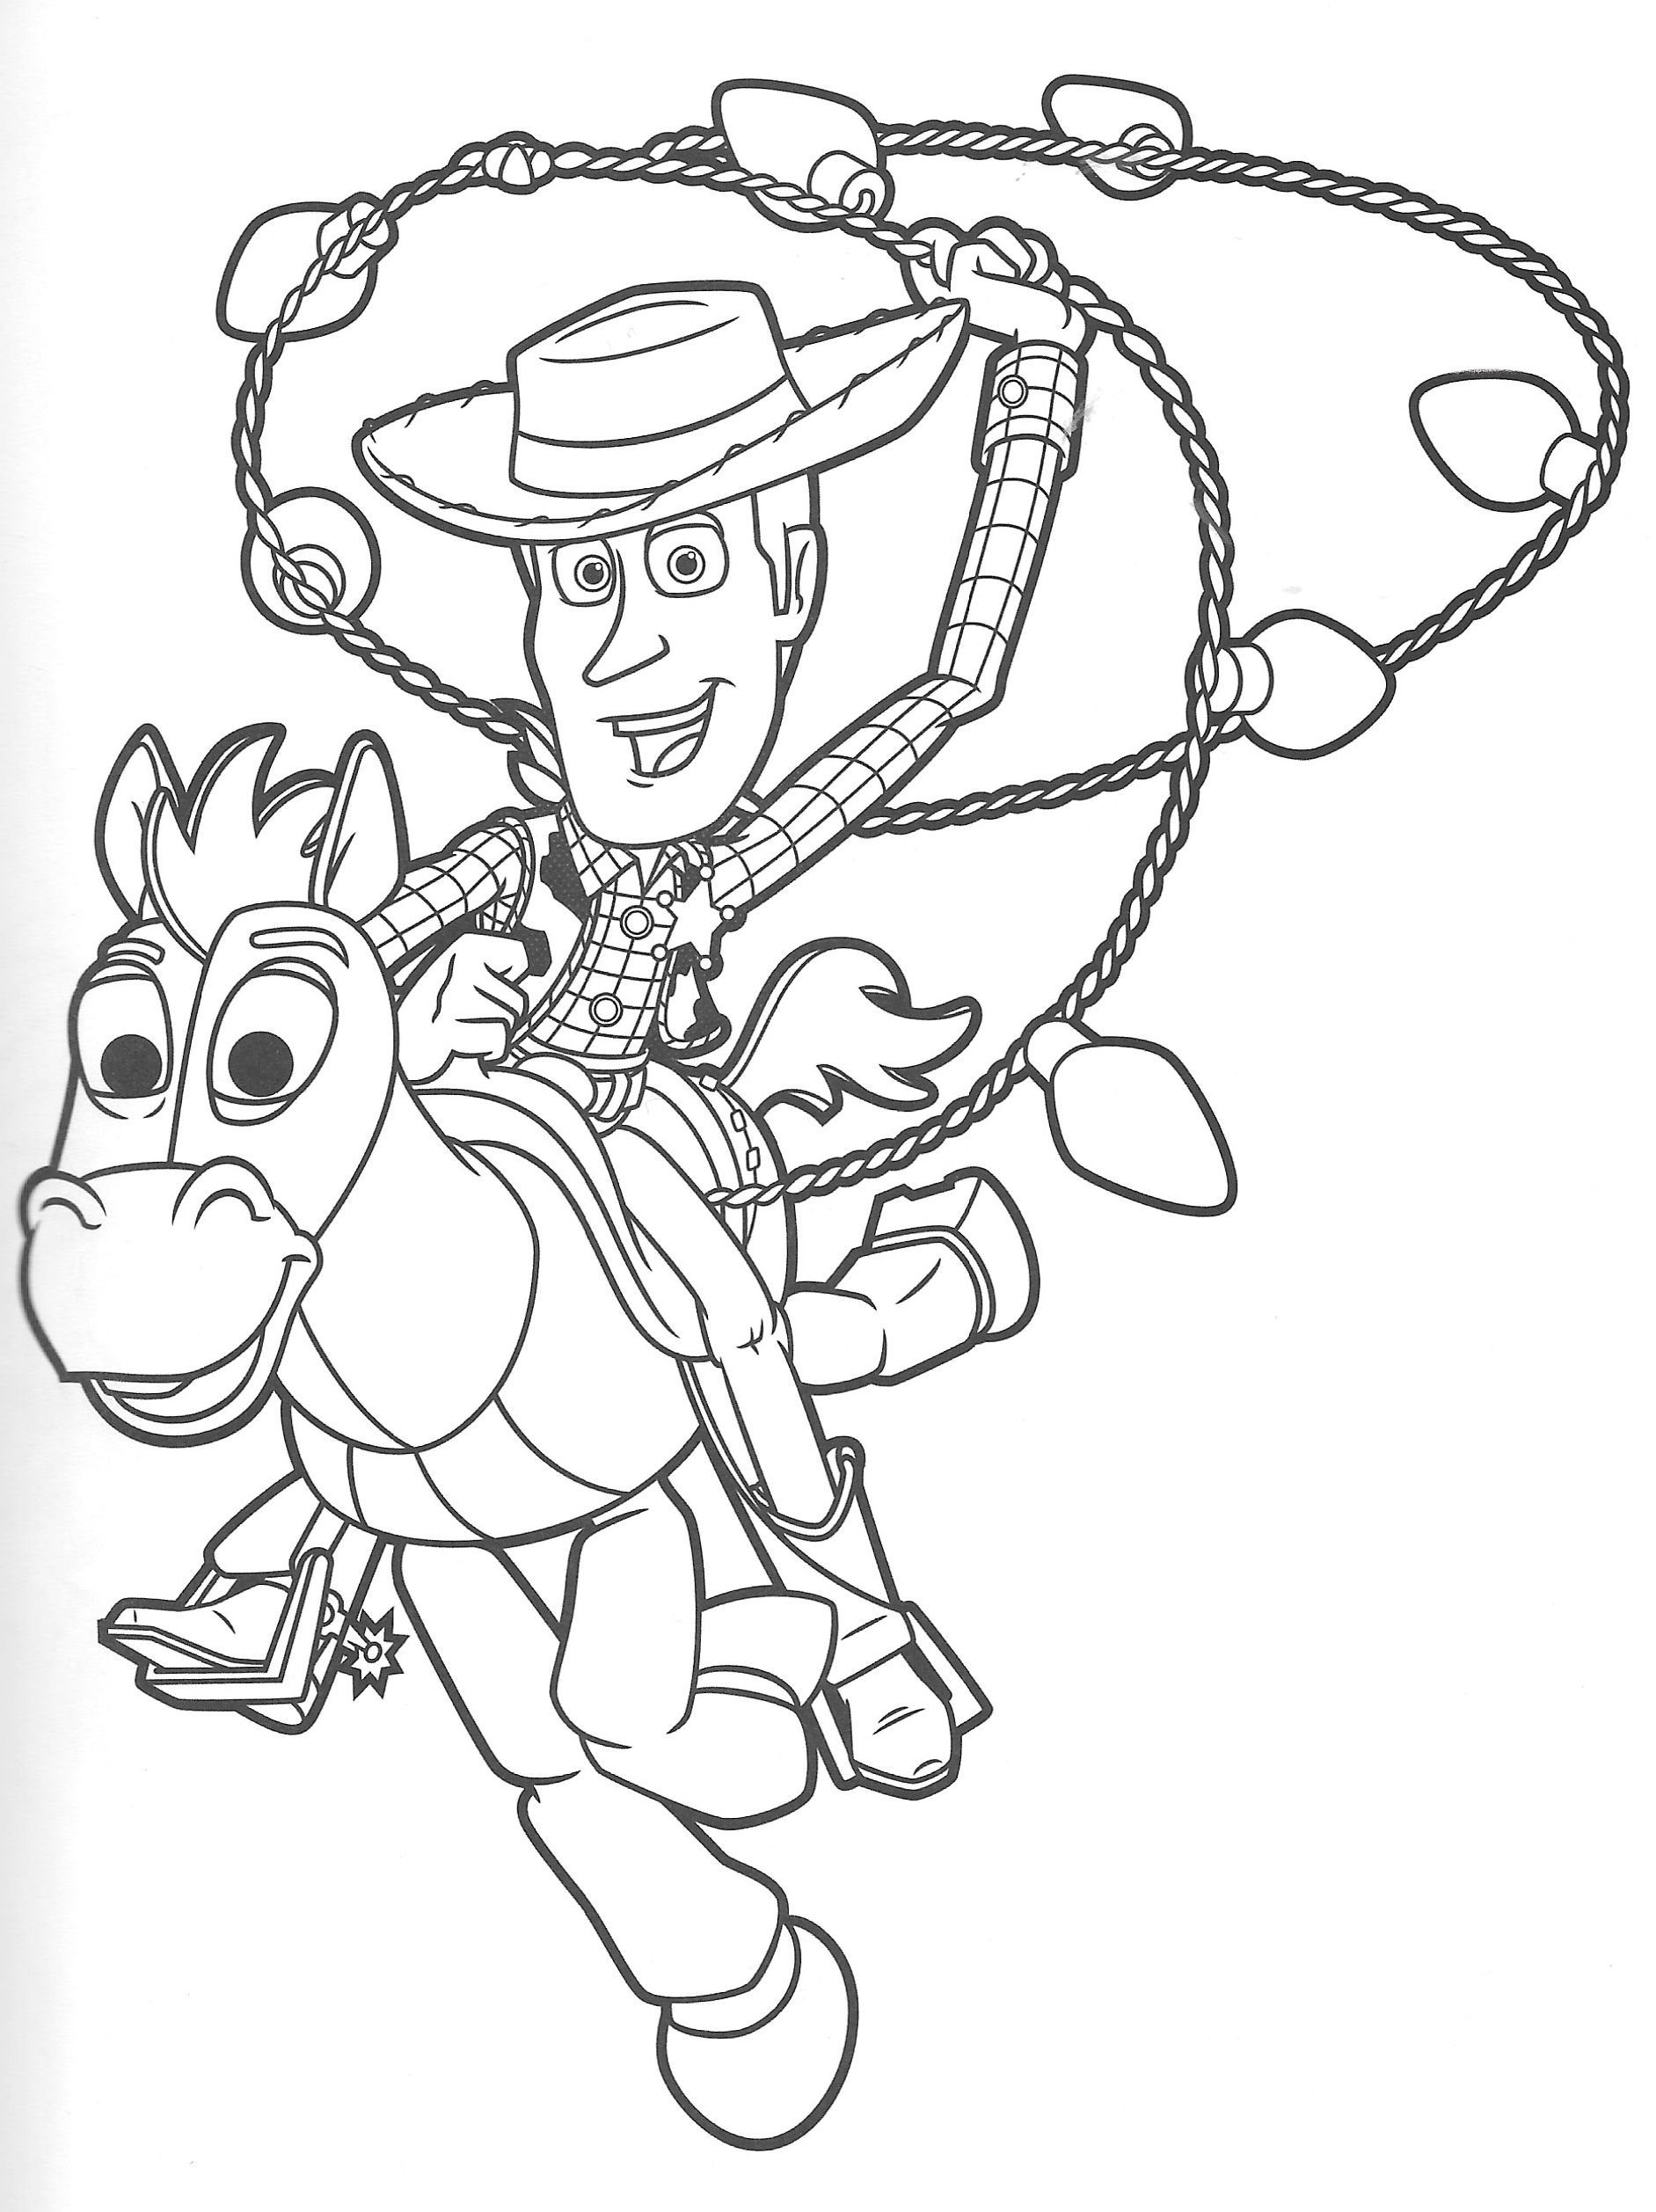 Pin By Csmith Smith Gang Family Farm On Disney Toy Story Coloring Pages Disney Coloring Pages Christmas Coloring Pages